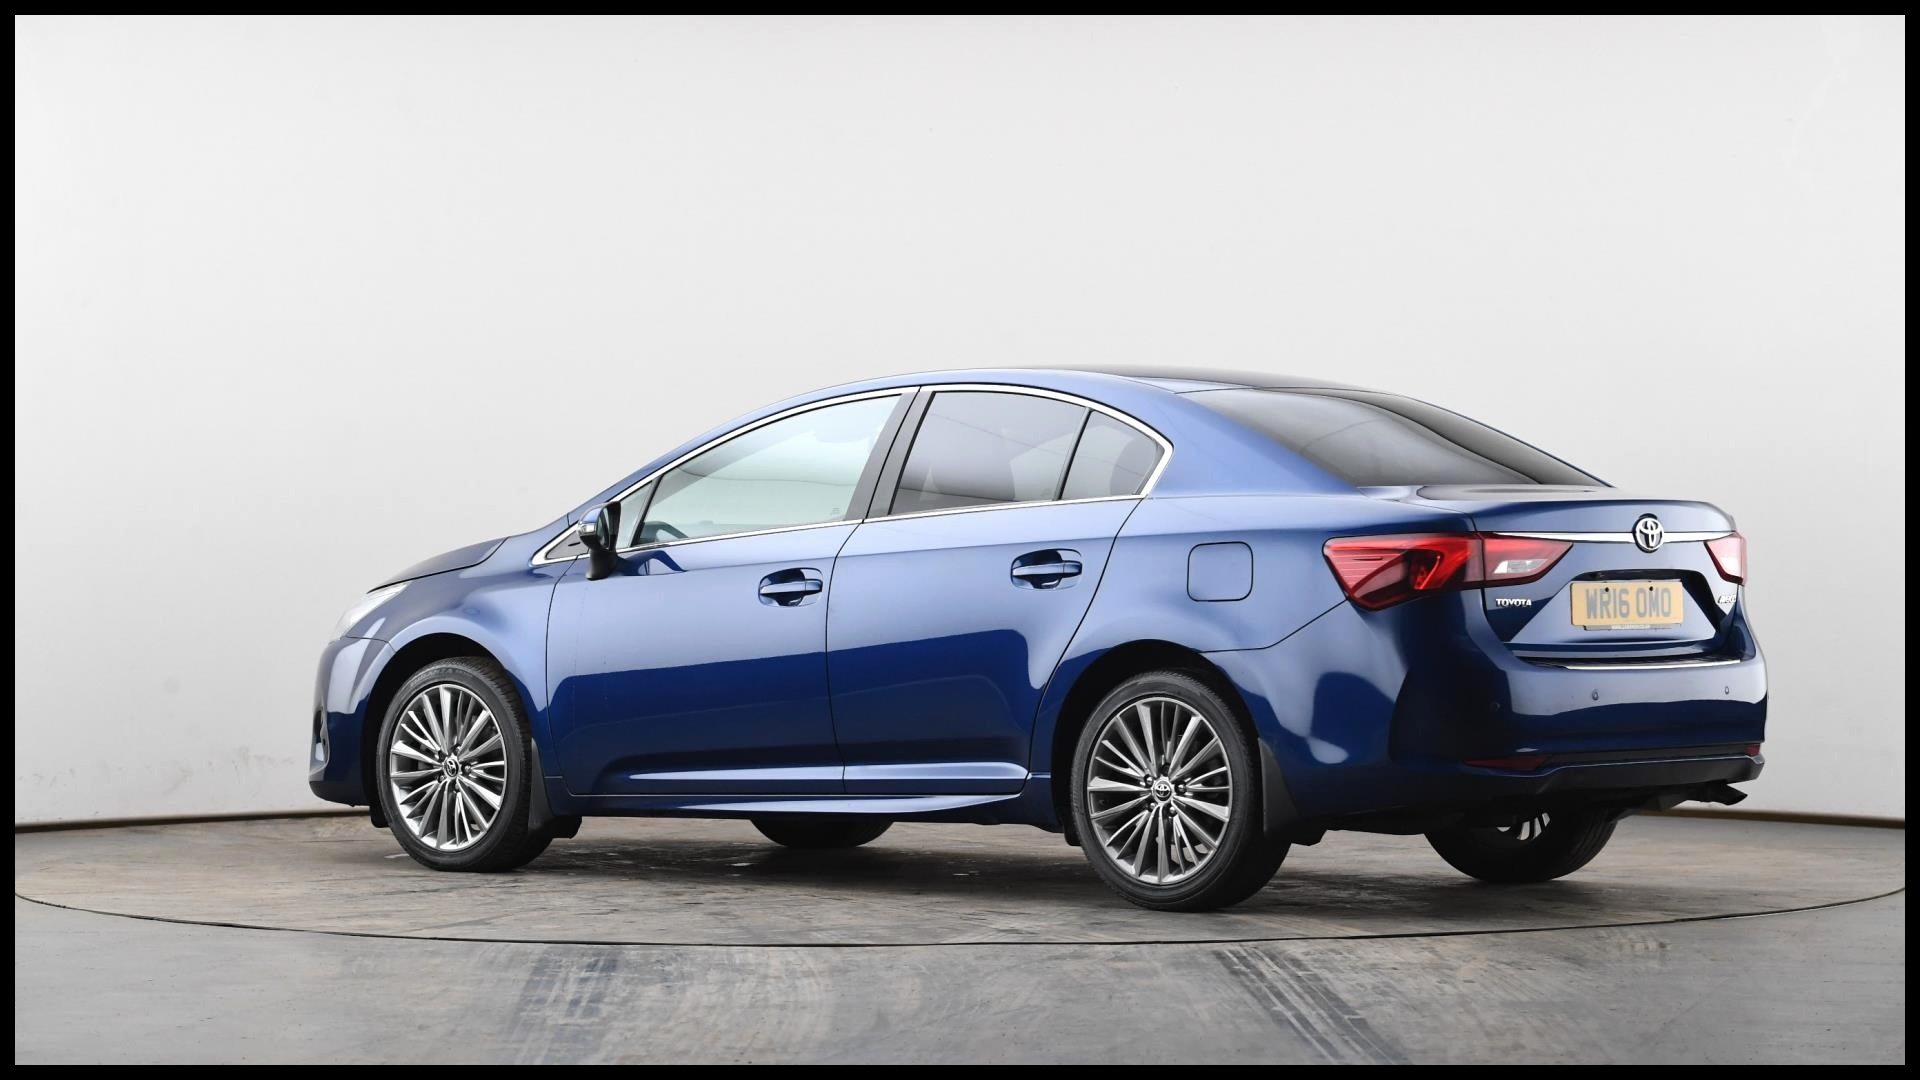 Toyota Sports Car 2016 these are Used toyota Avensis 2 0d Excel 4dr Blue Wr16omo